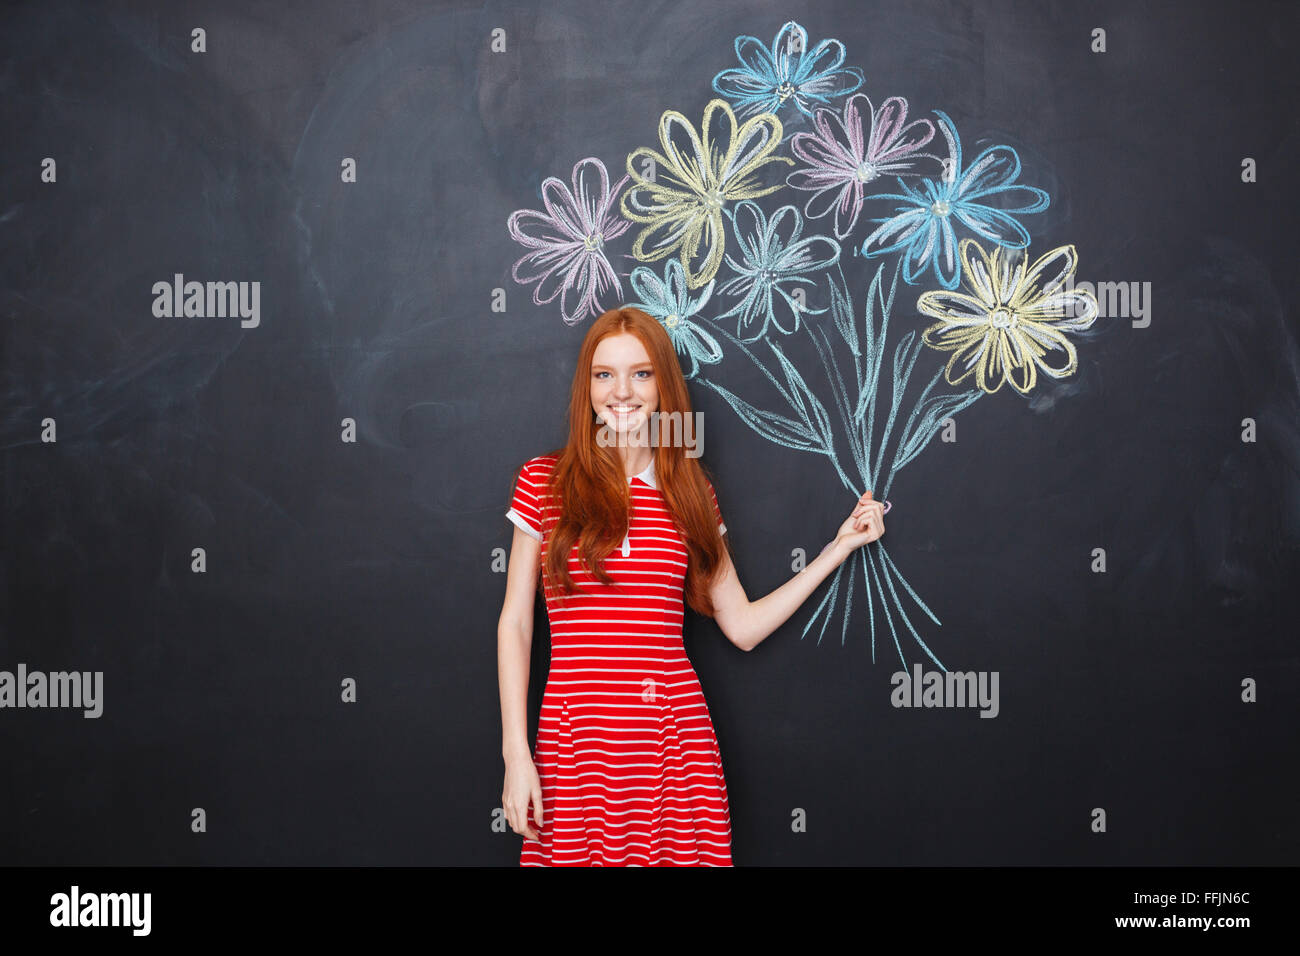 Smiling attractive redhead young woman standing and holding bouquet of drawn flowers over blackboard background - Stock Image